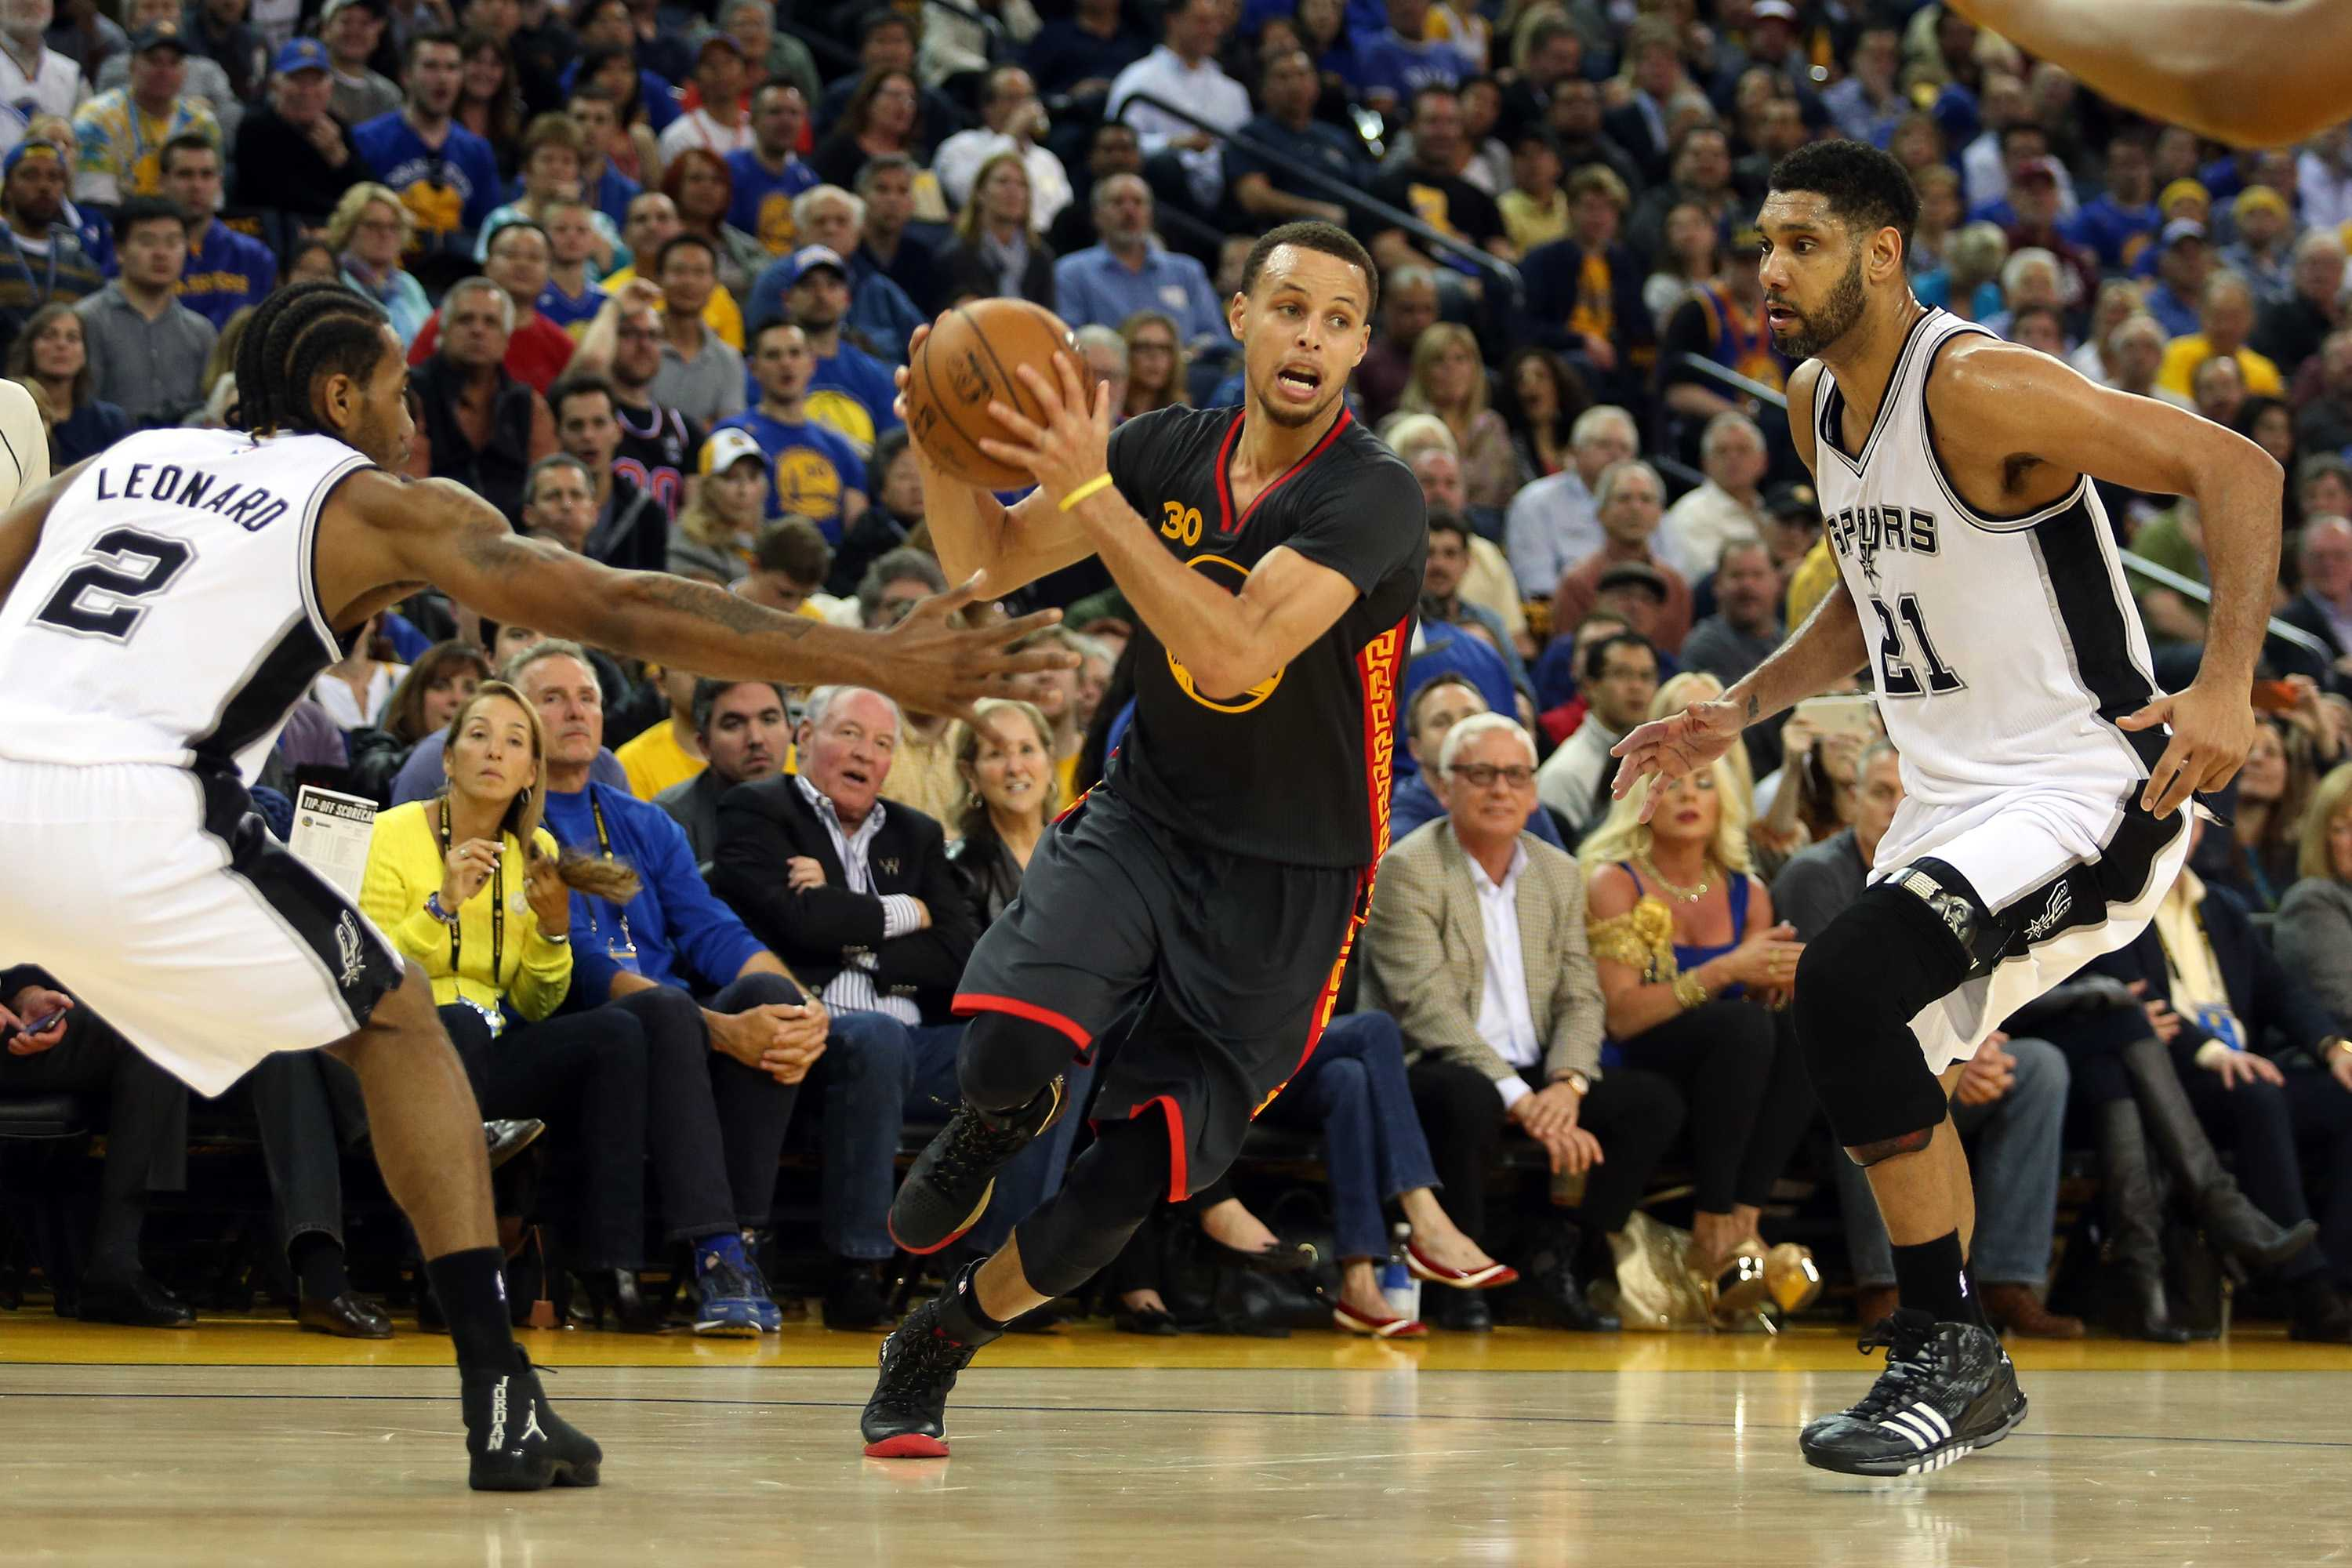 The Golden State Warriors' Stephen Curry (30) drives past the San Antonio Spurs' Kawhi Leonard (2) and Tim Duncan (21) in the first half at Oracle Arena in Oakland, Calif., on Friday, Feb. 20, 2015. (Ray Chavez/Bay Area News Group/TNS)